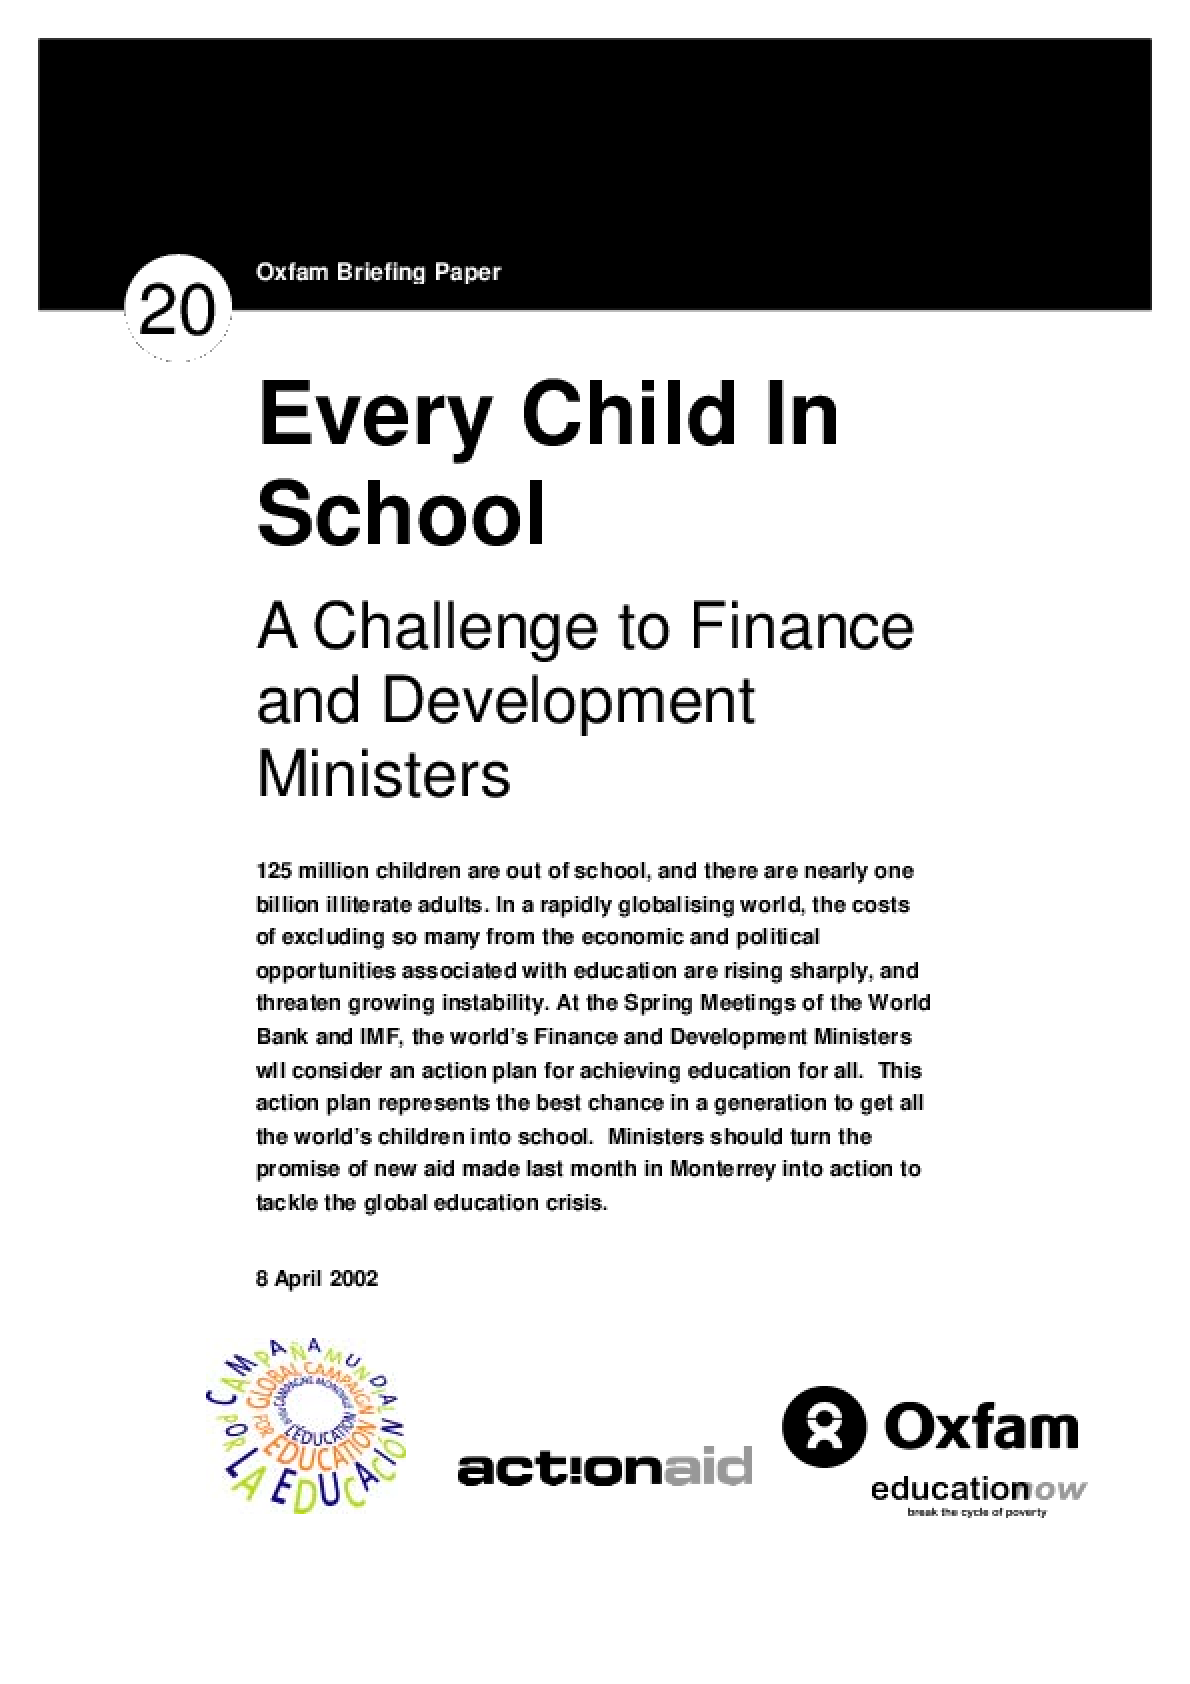 Every Child in School: A challenge to finance and development ministers